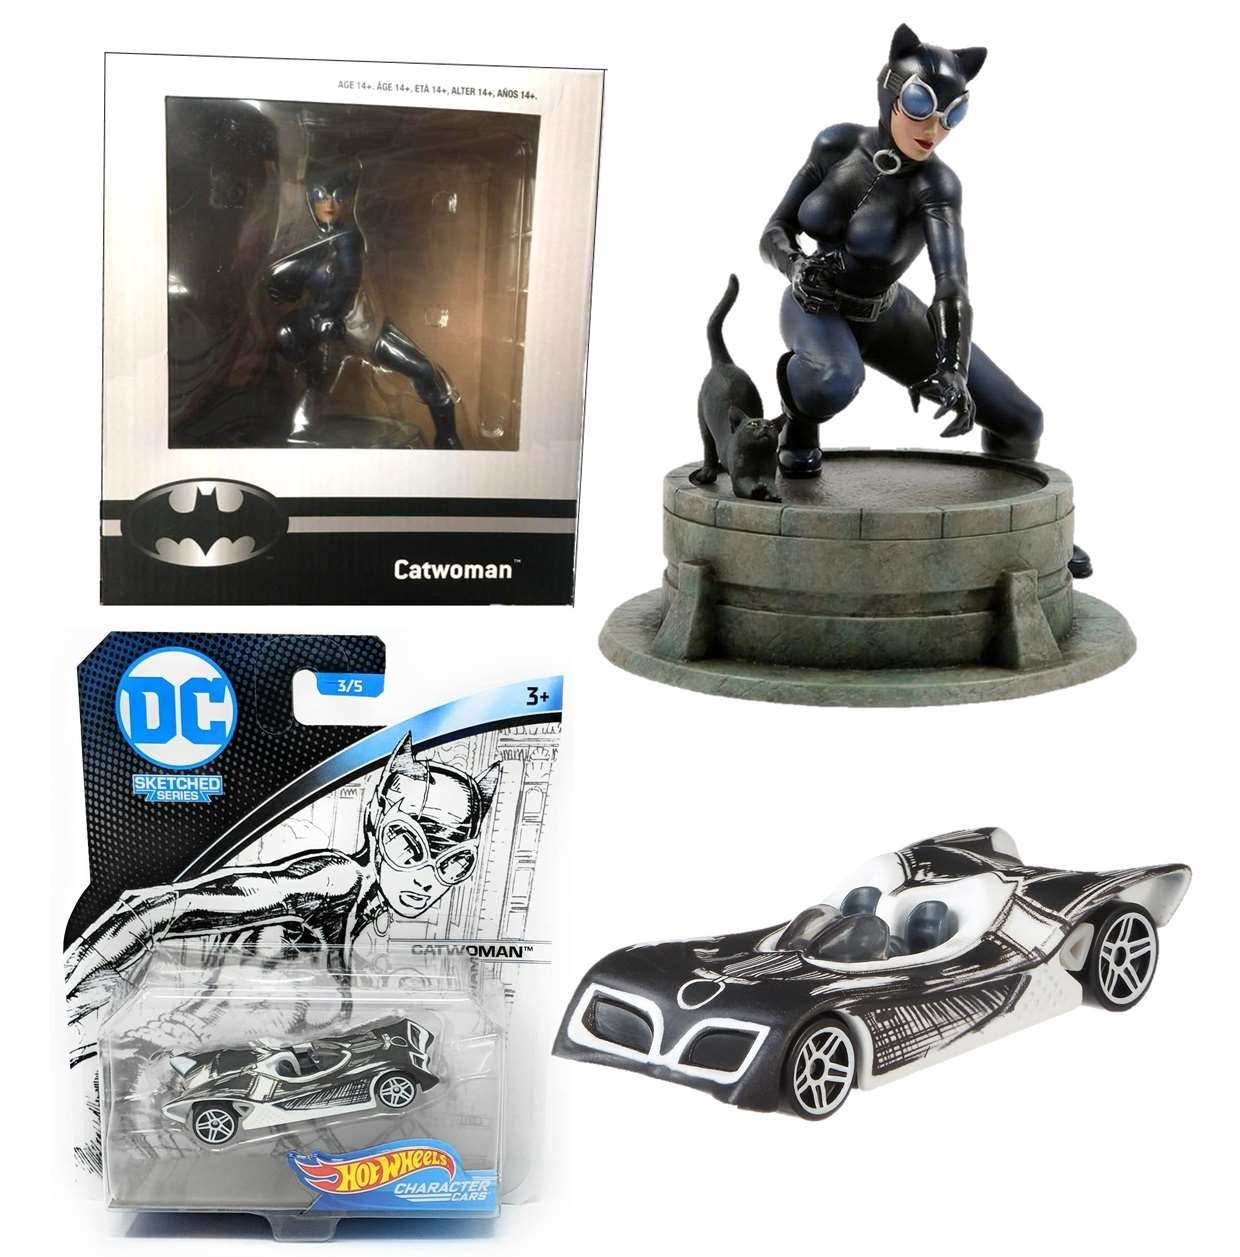 Catwoman Diorama Exclusivo Game Stop + Catwoman Hot Wheels